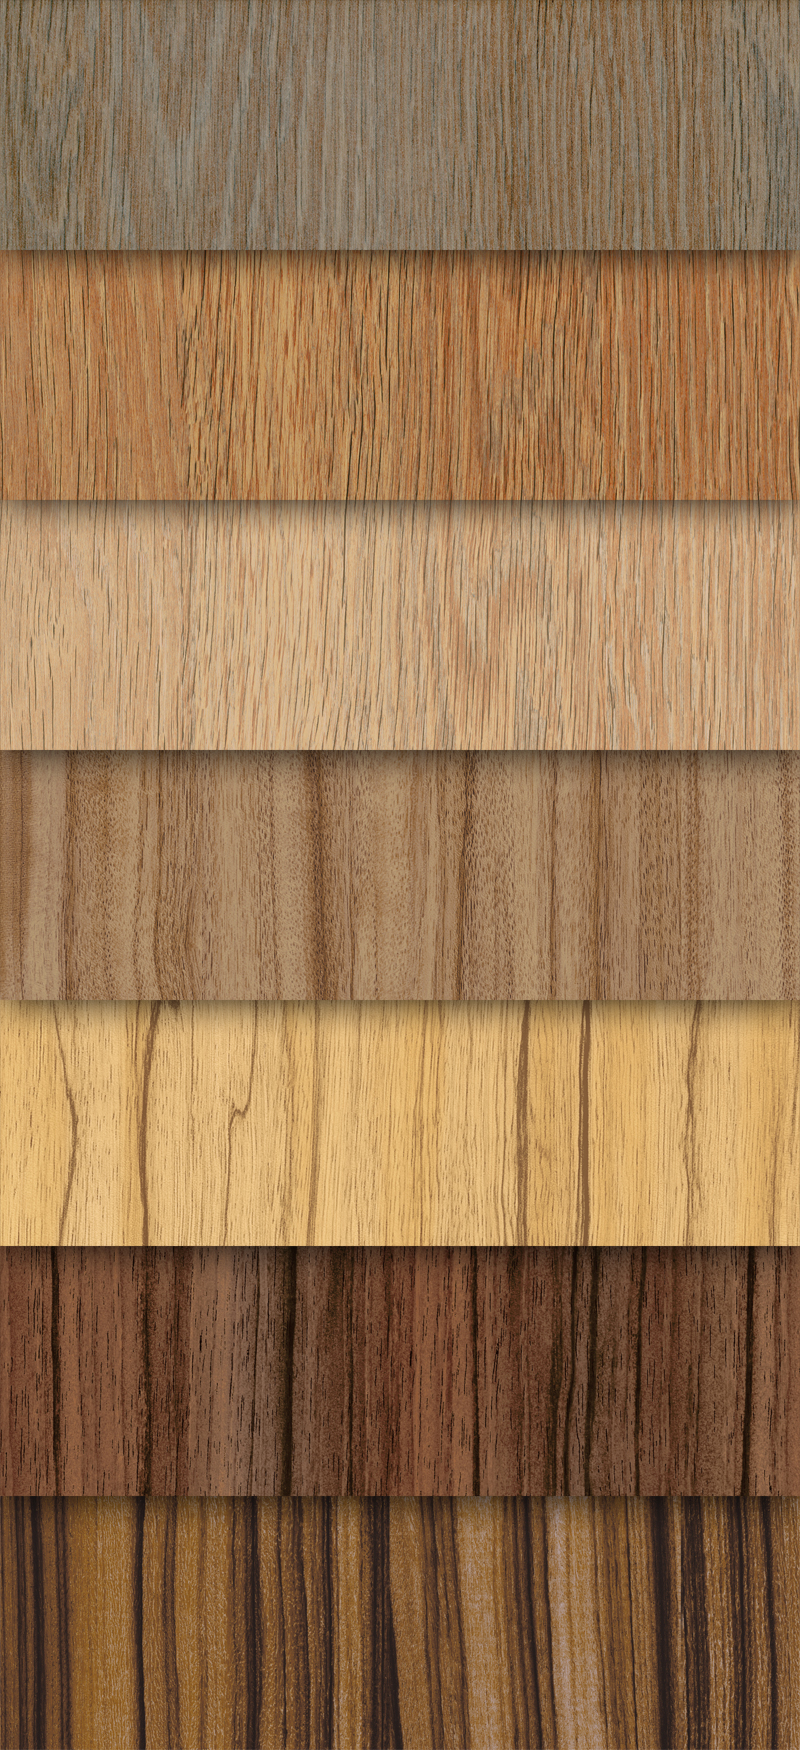 Natural Wood Grain Textures And Patterns Psd Mockups